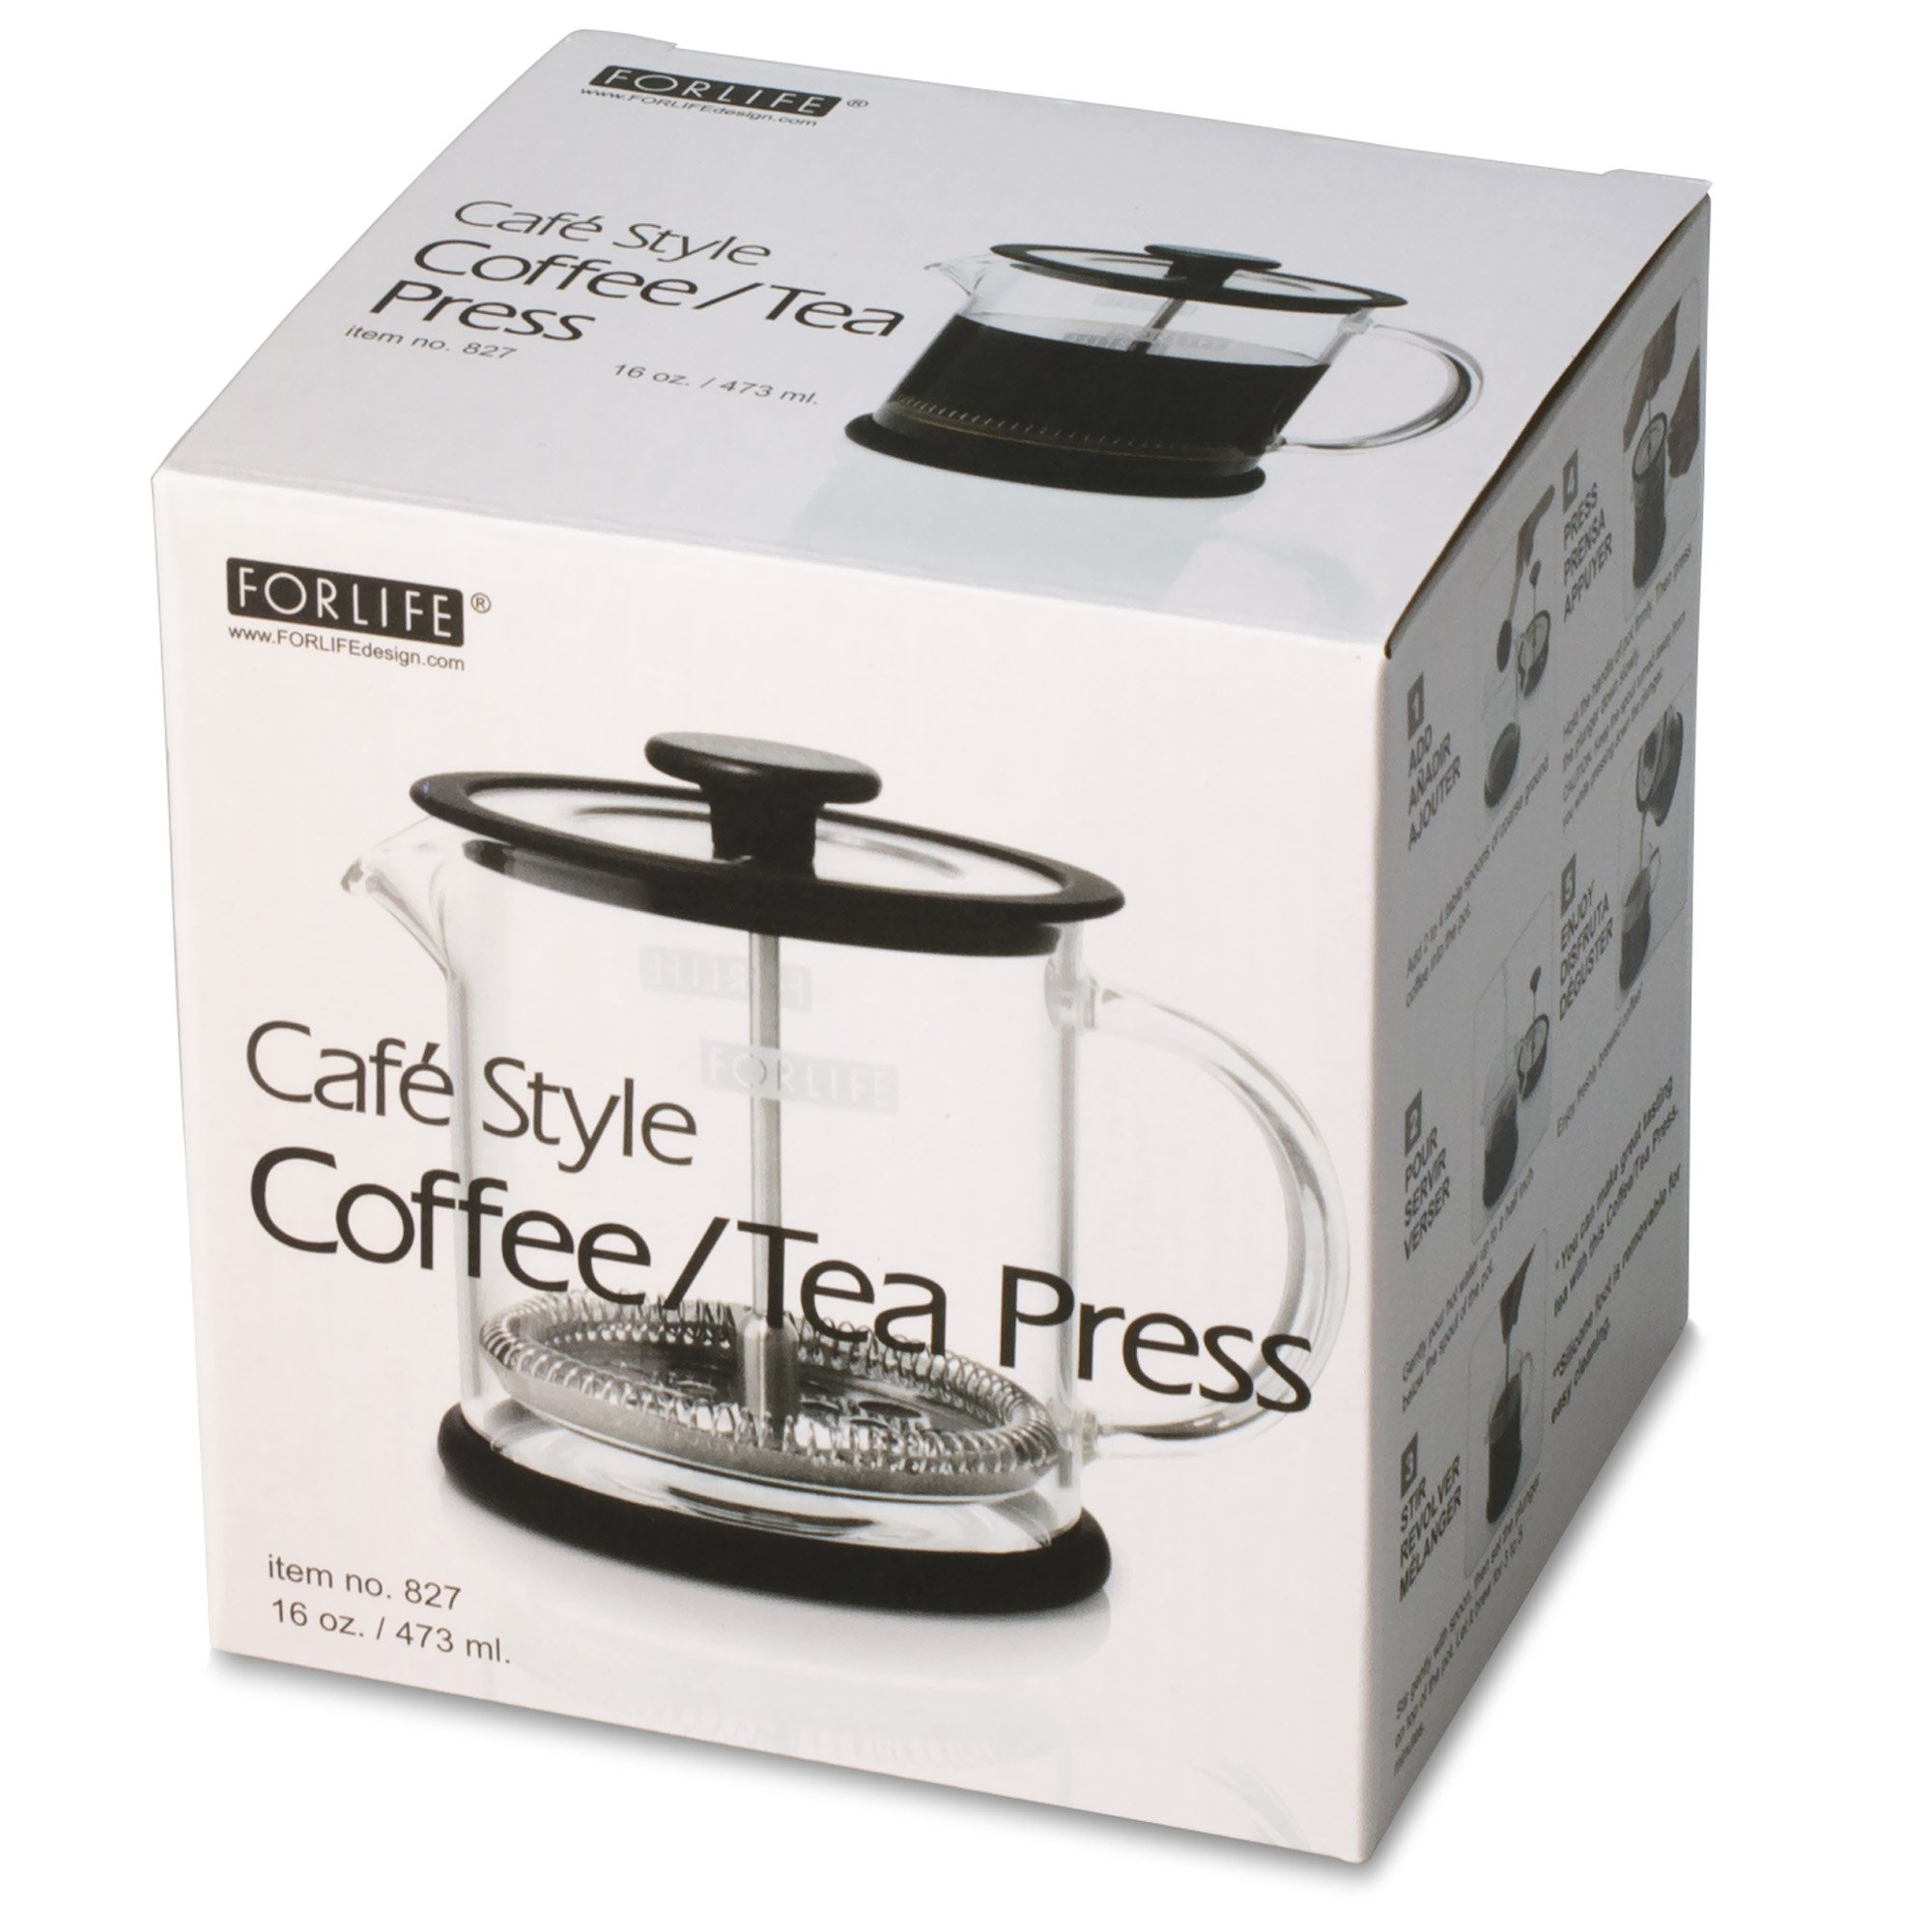 FORLIFE Cafe Style Glass Coffee/Tea Press, 16-Ounce, Black by FORLIFE (Image #6)